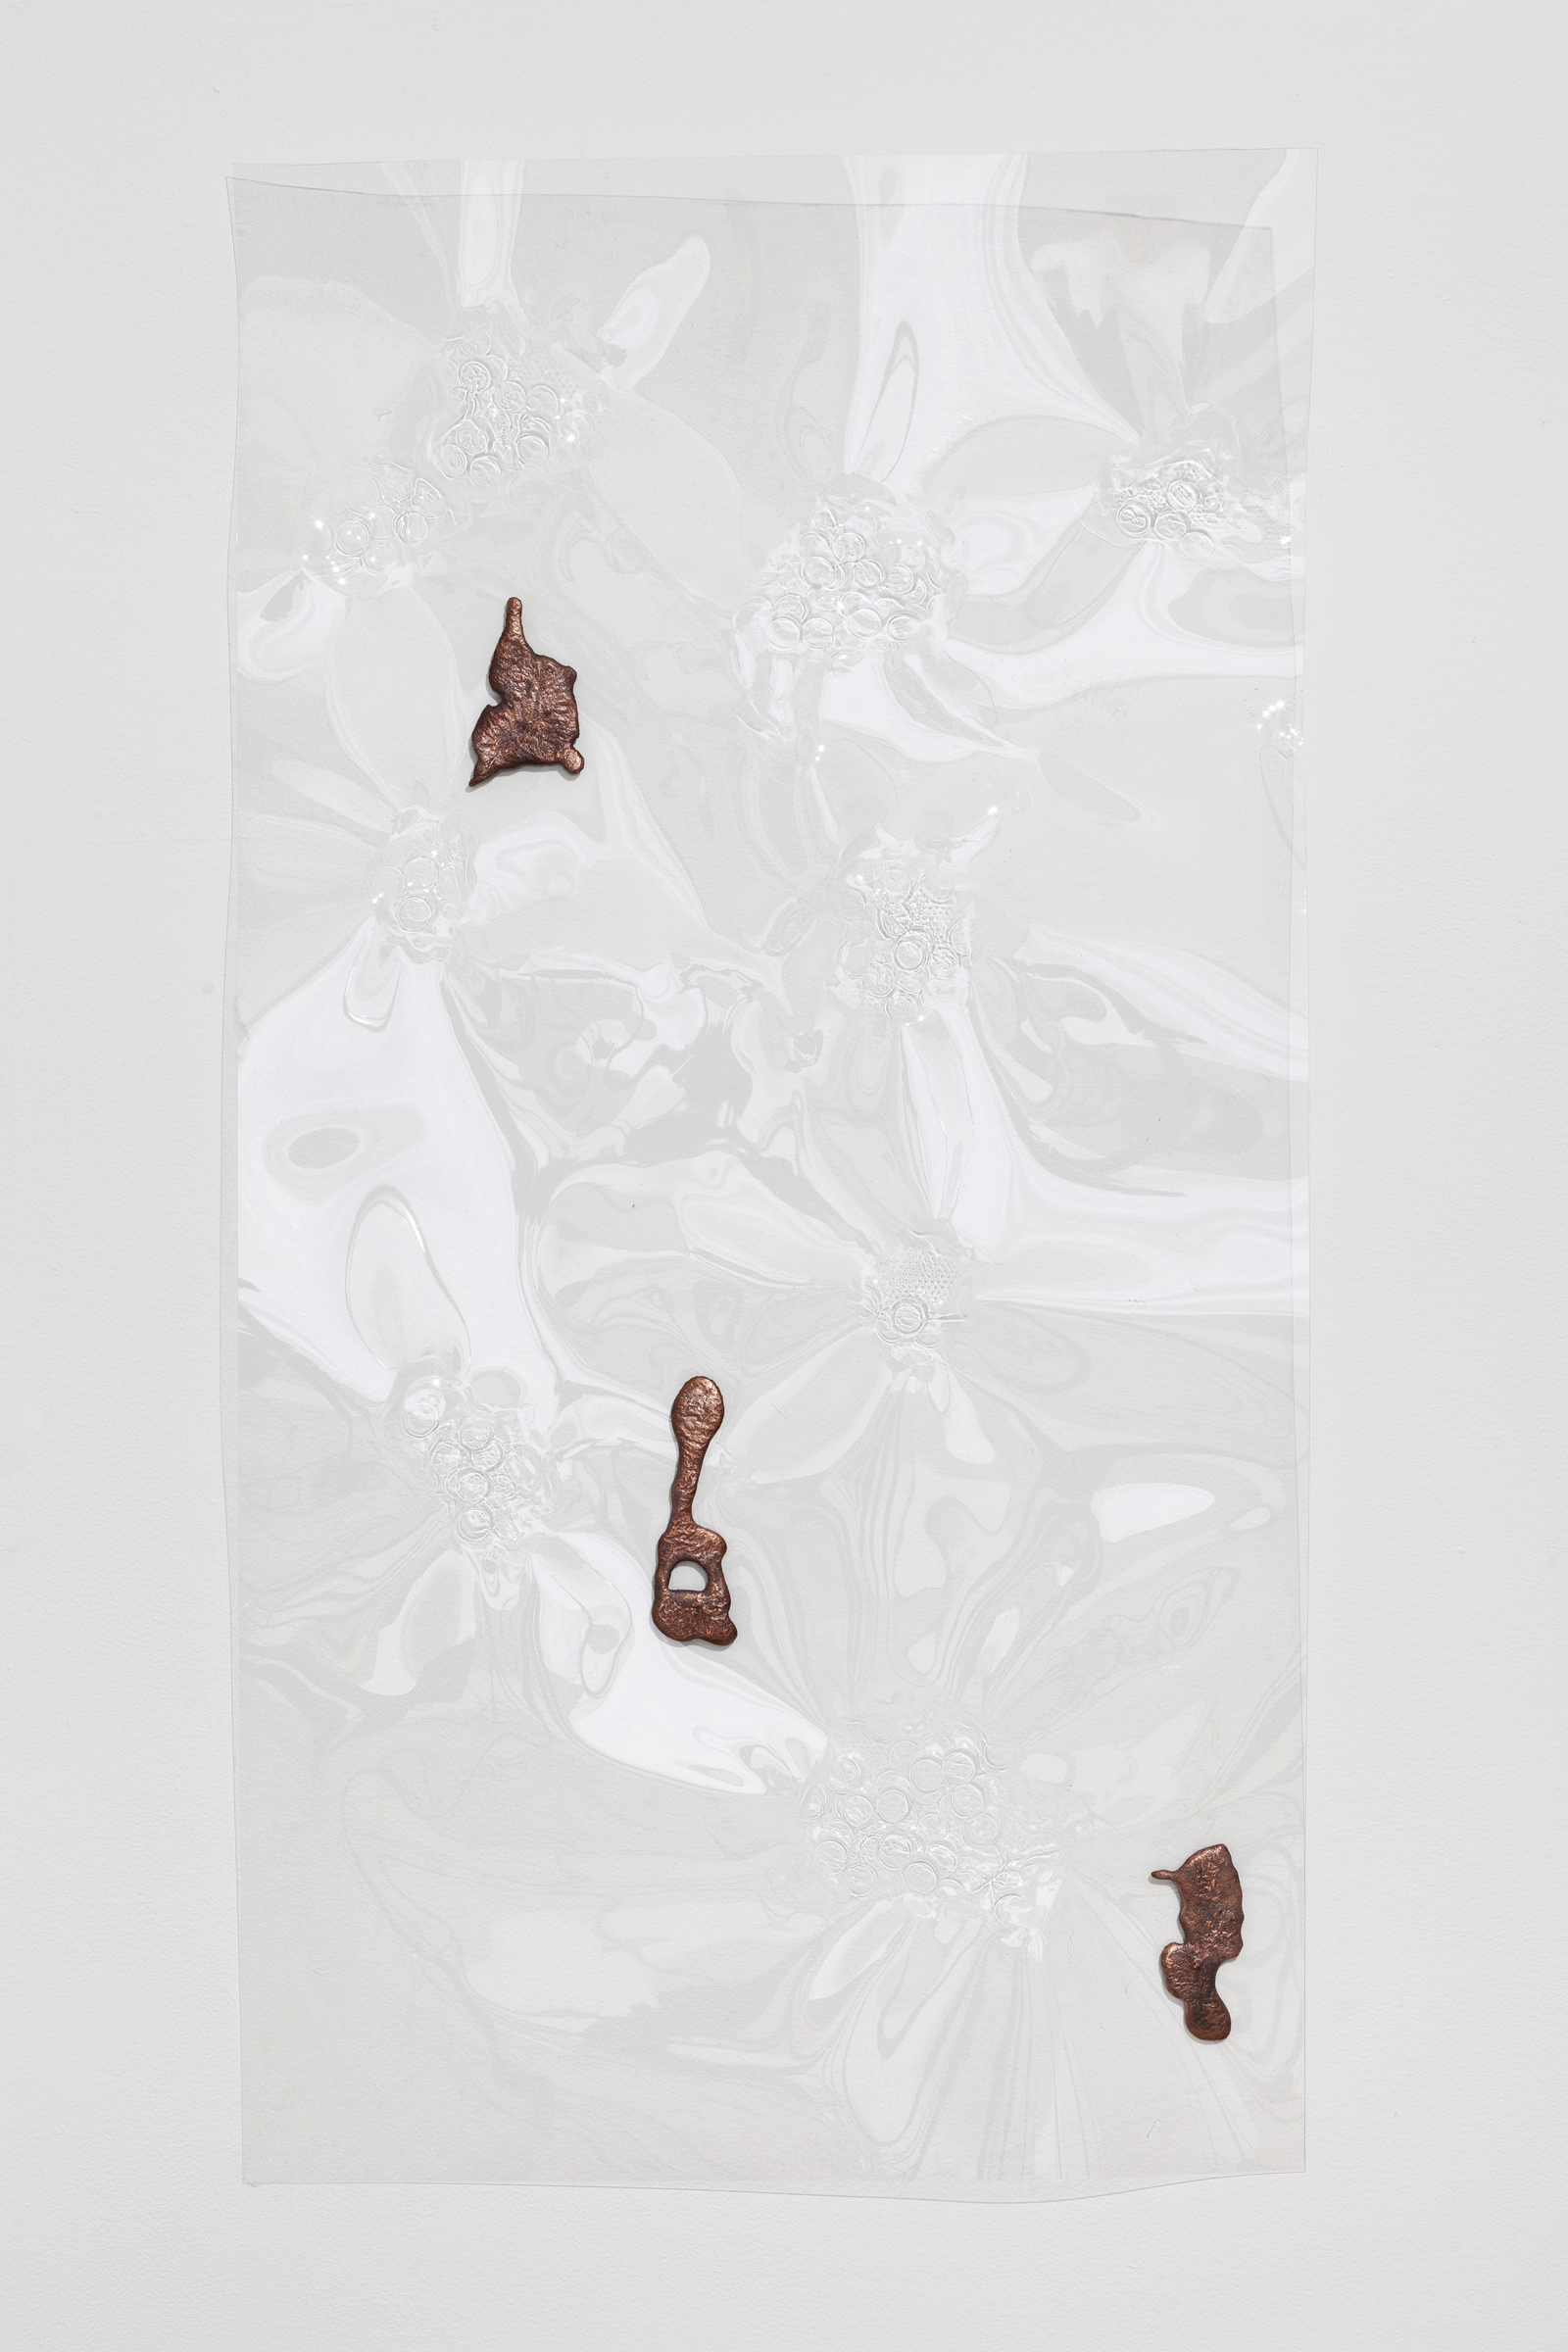 Jory Rabinovitz,  Fountain Relief 7,  2014, vacuformed plastic, melted pennies 48 x 24 in.